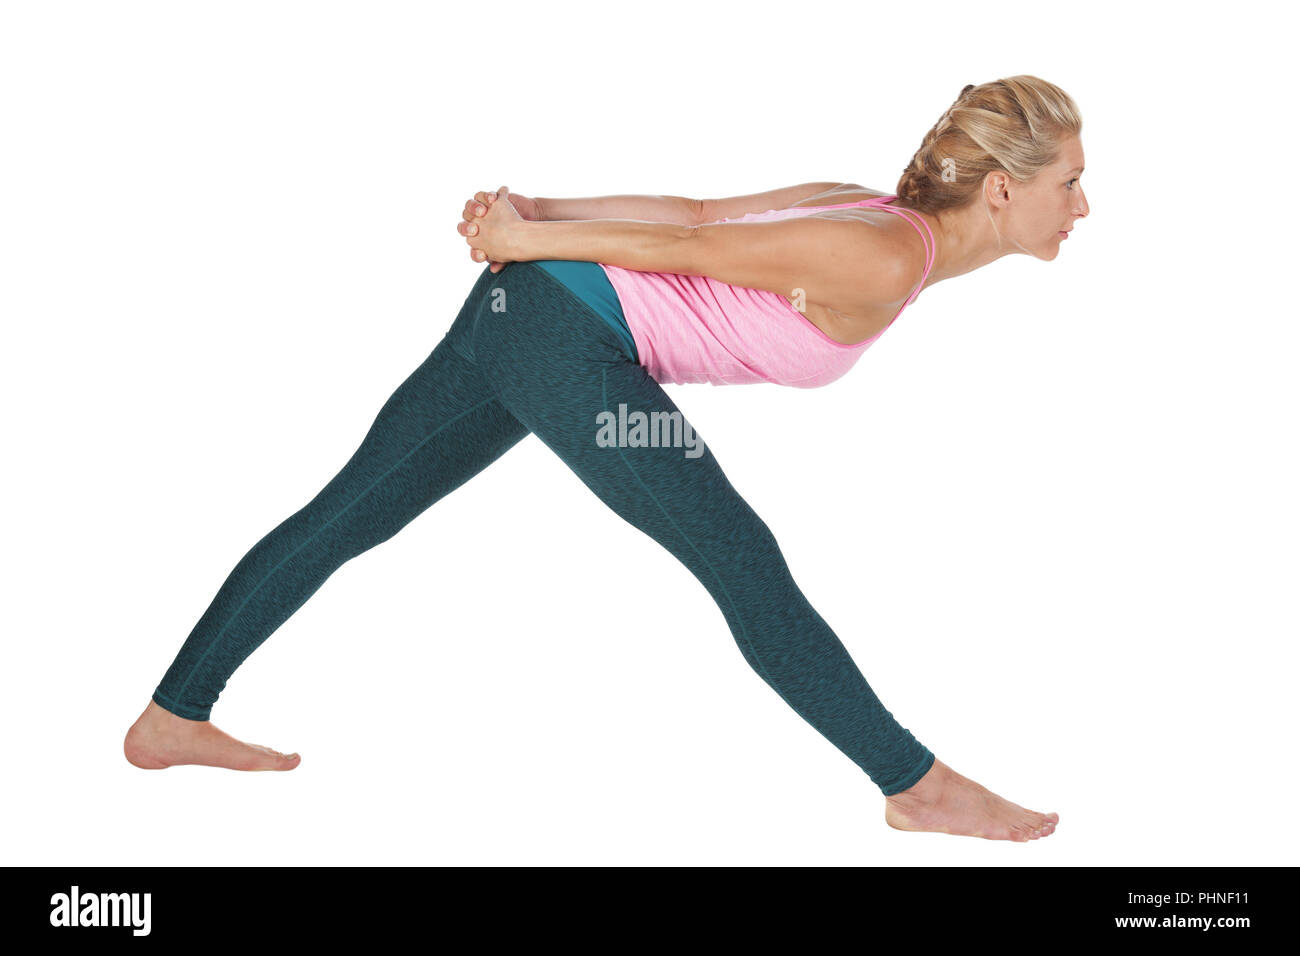 Yoga_side front over bend_high - Stock Image